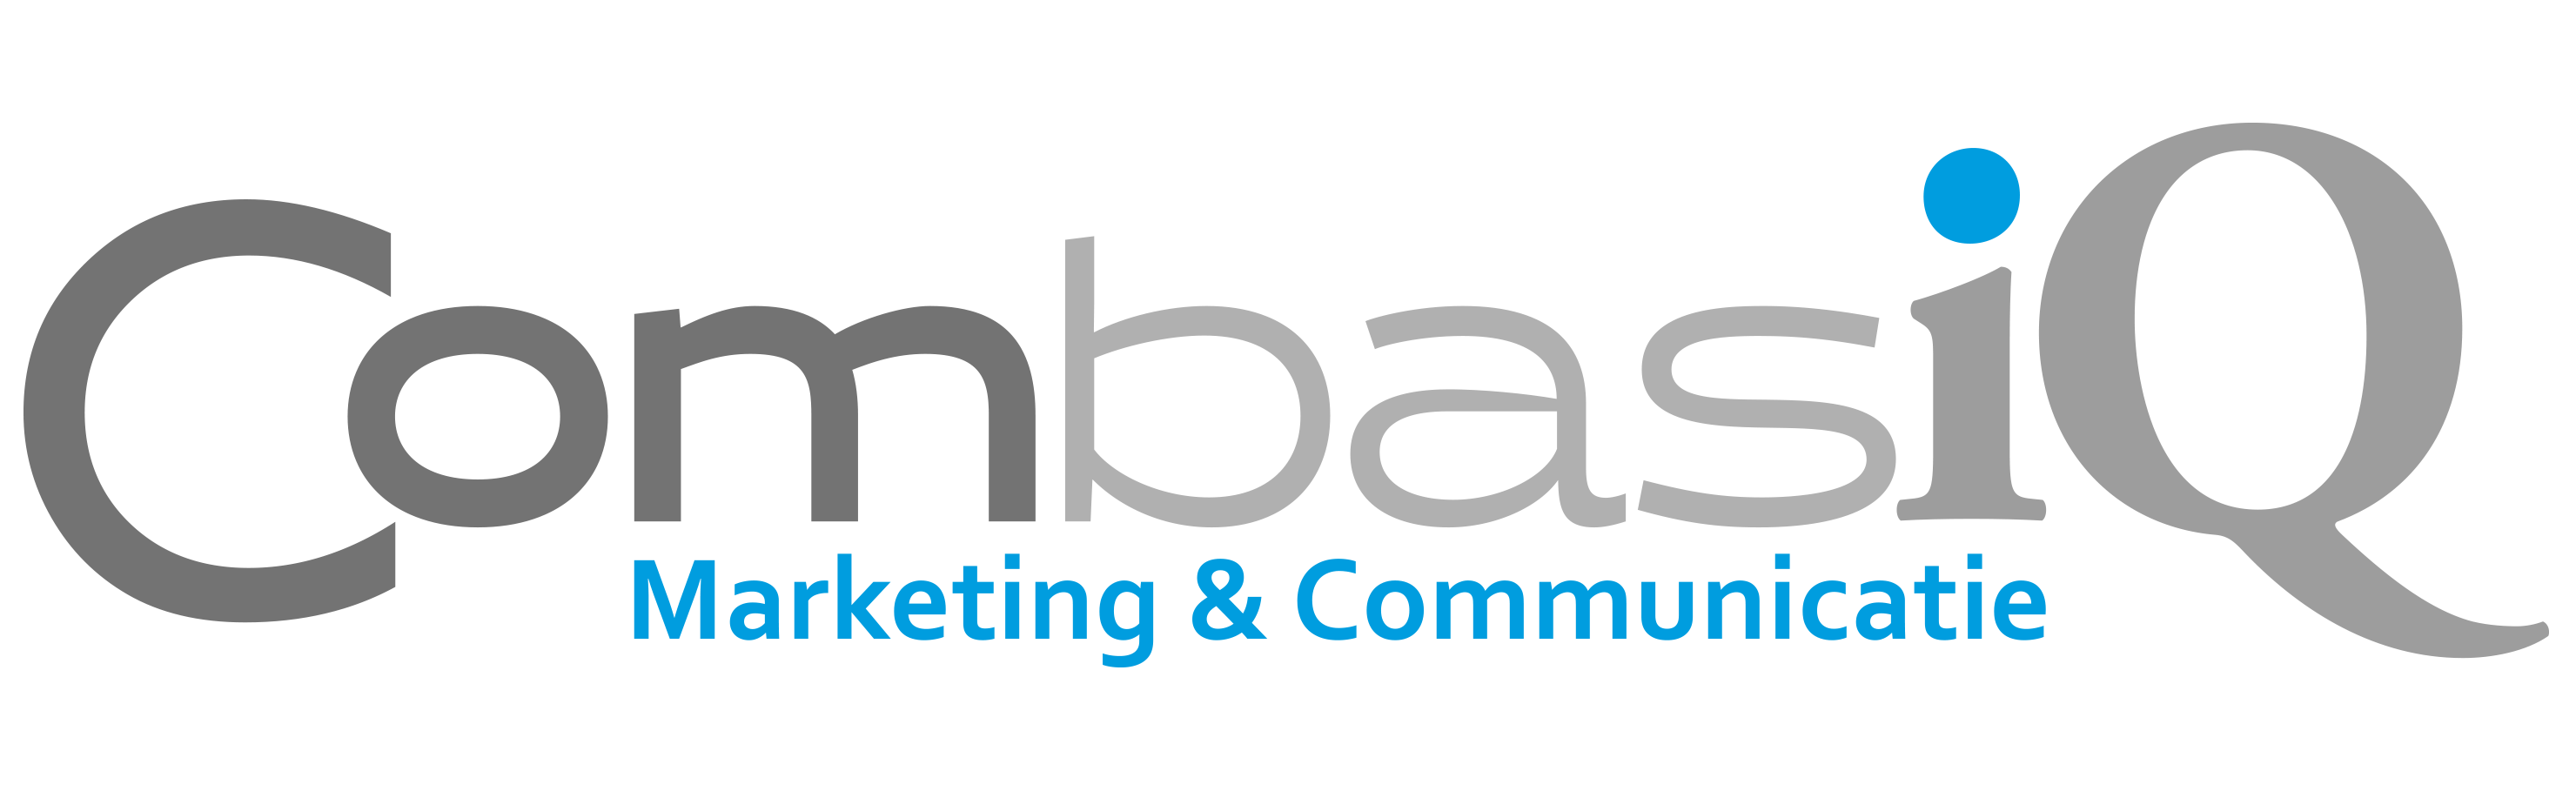 CombasiQ Marketing & Communicatie